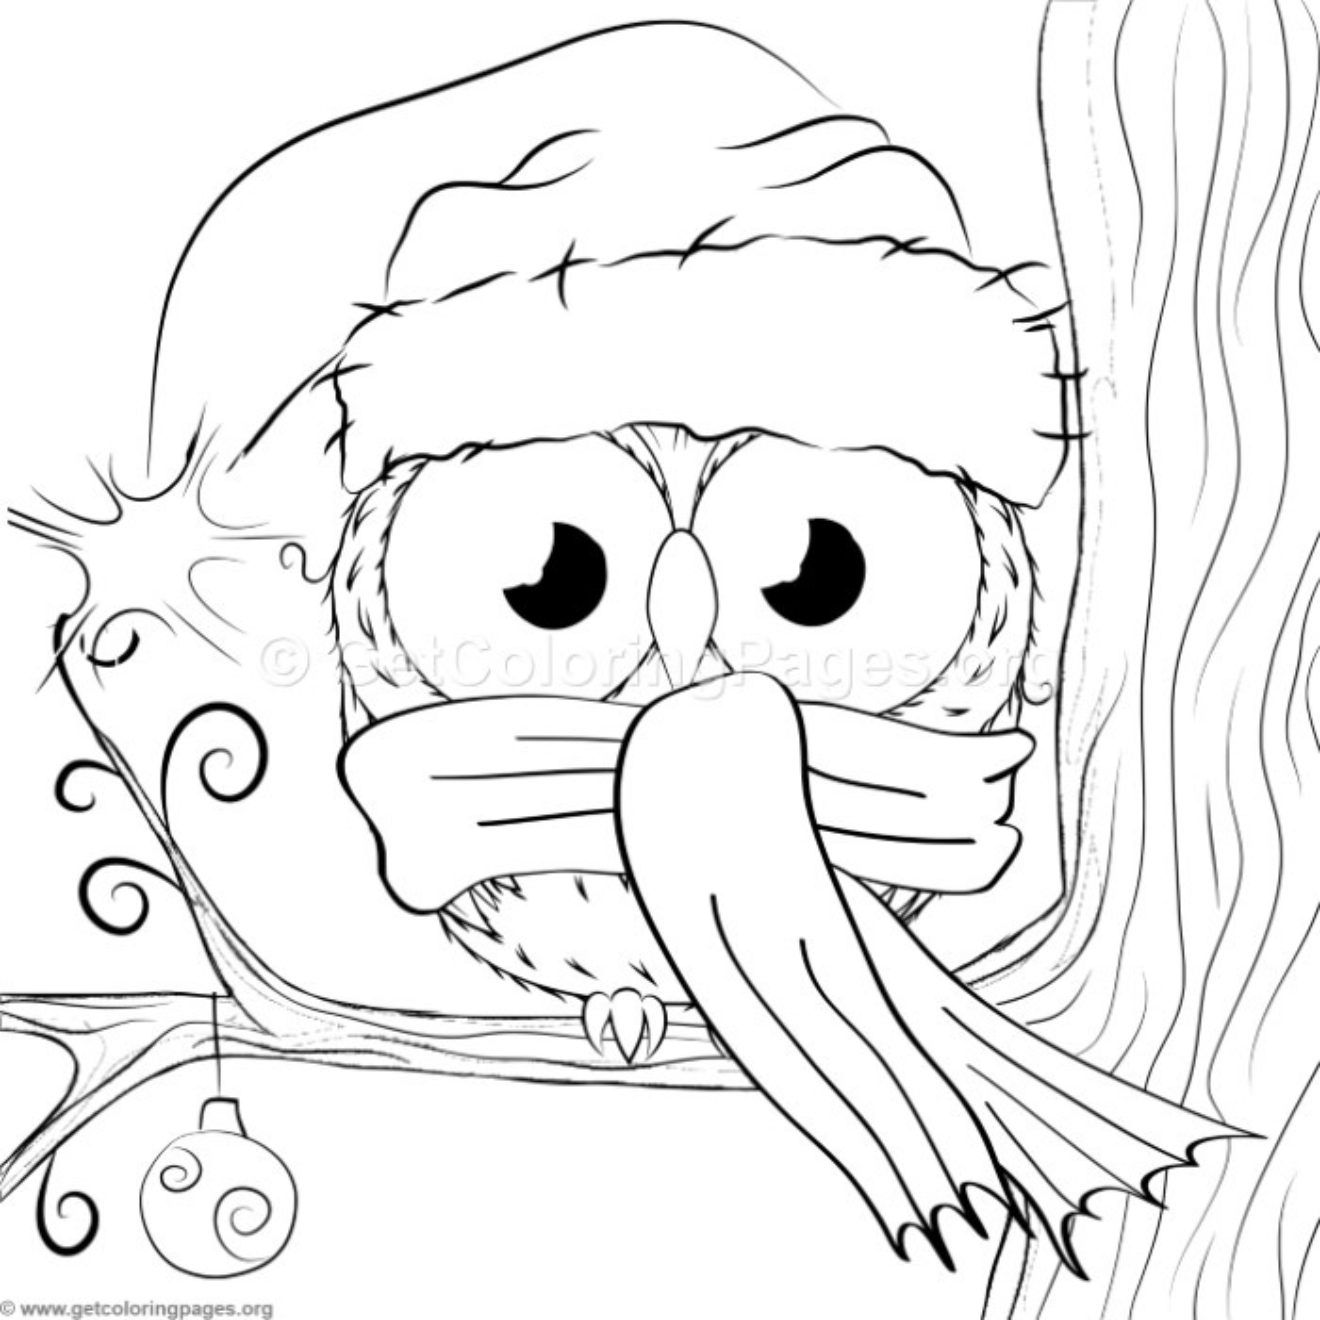 Cute Christmas Owl 1 Coloring Pages Getcoloringpages Org Owl Coloring Pages Christmas Coloring Sheets Christmas Owls